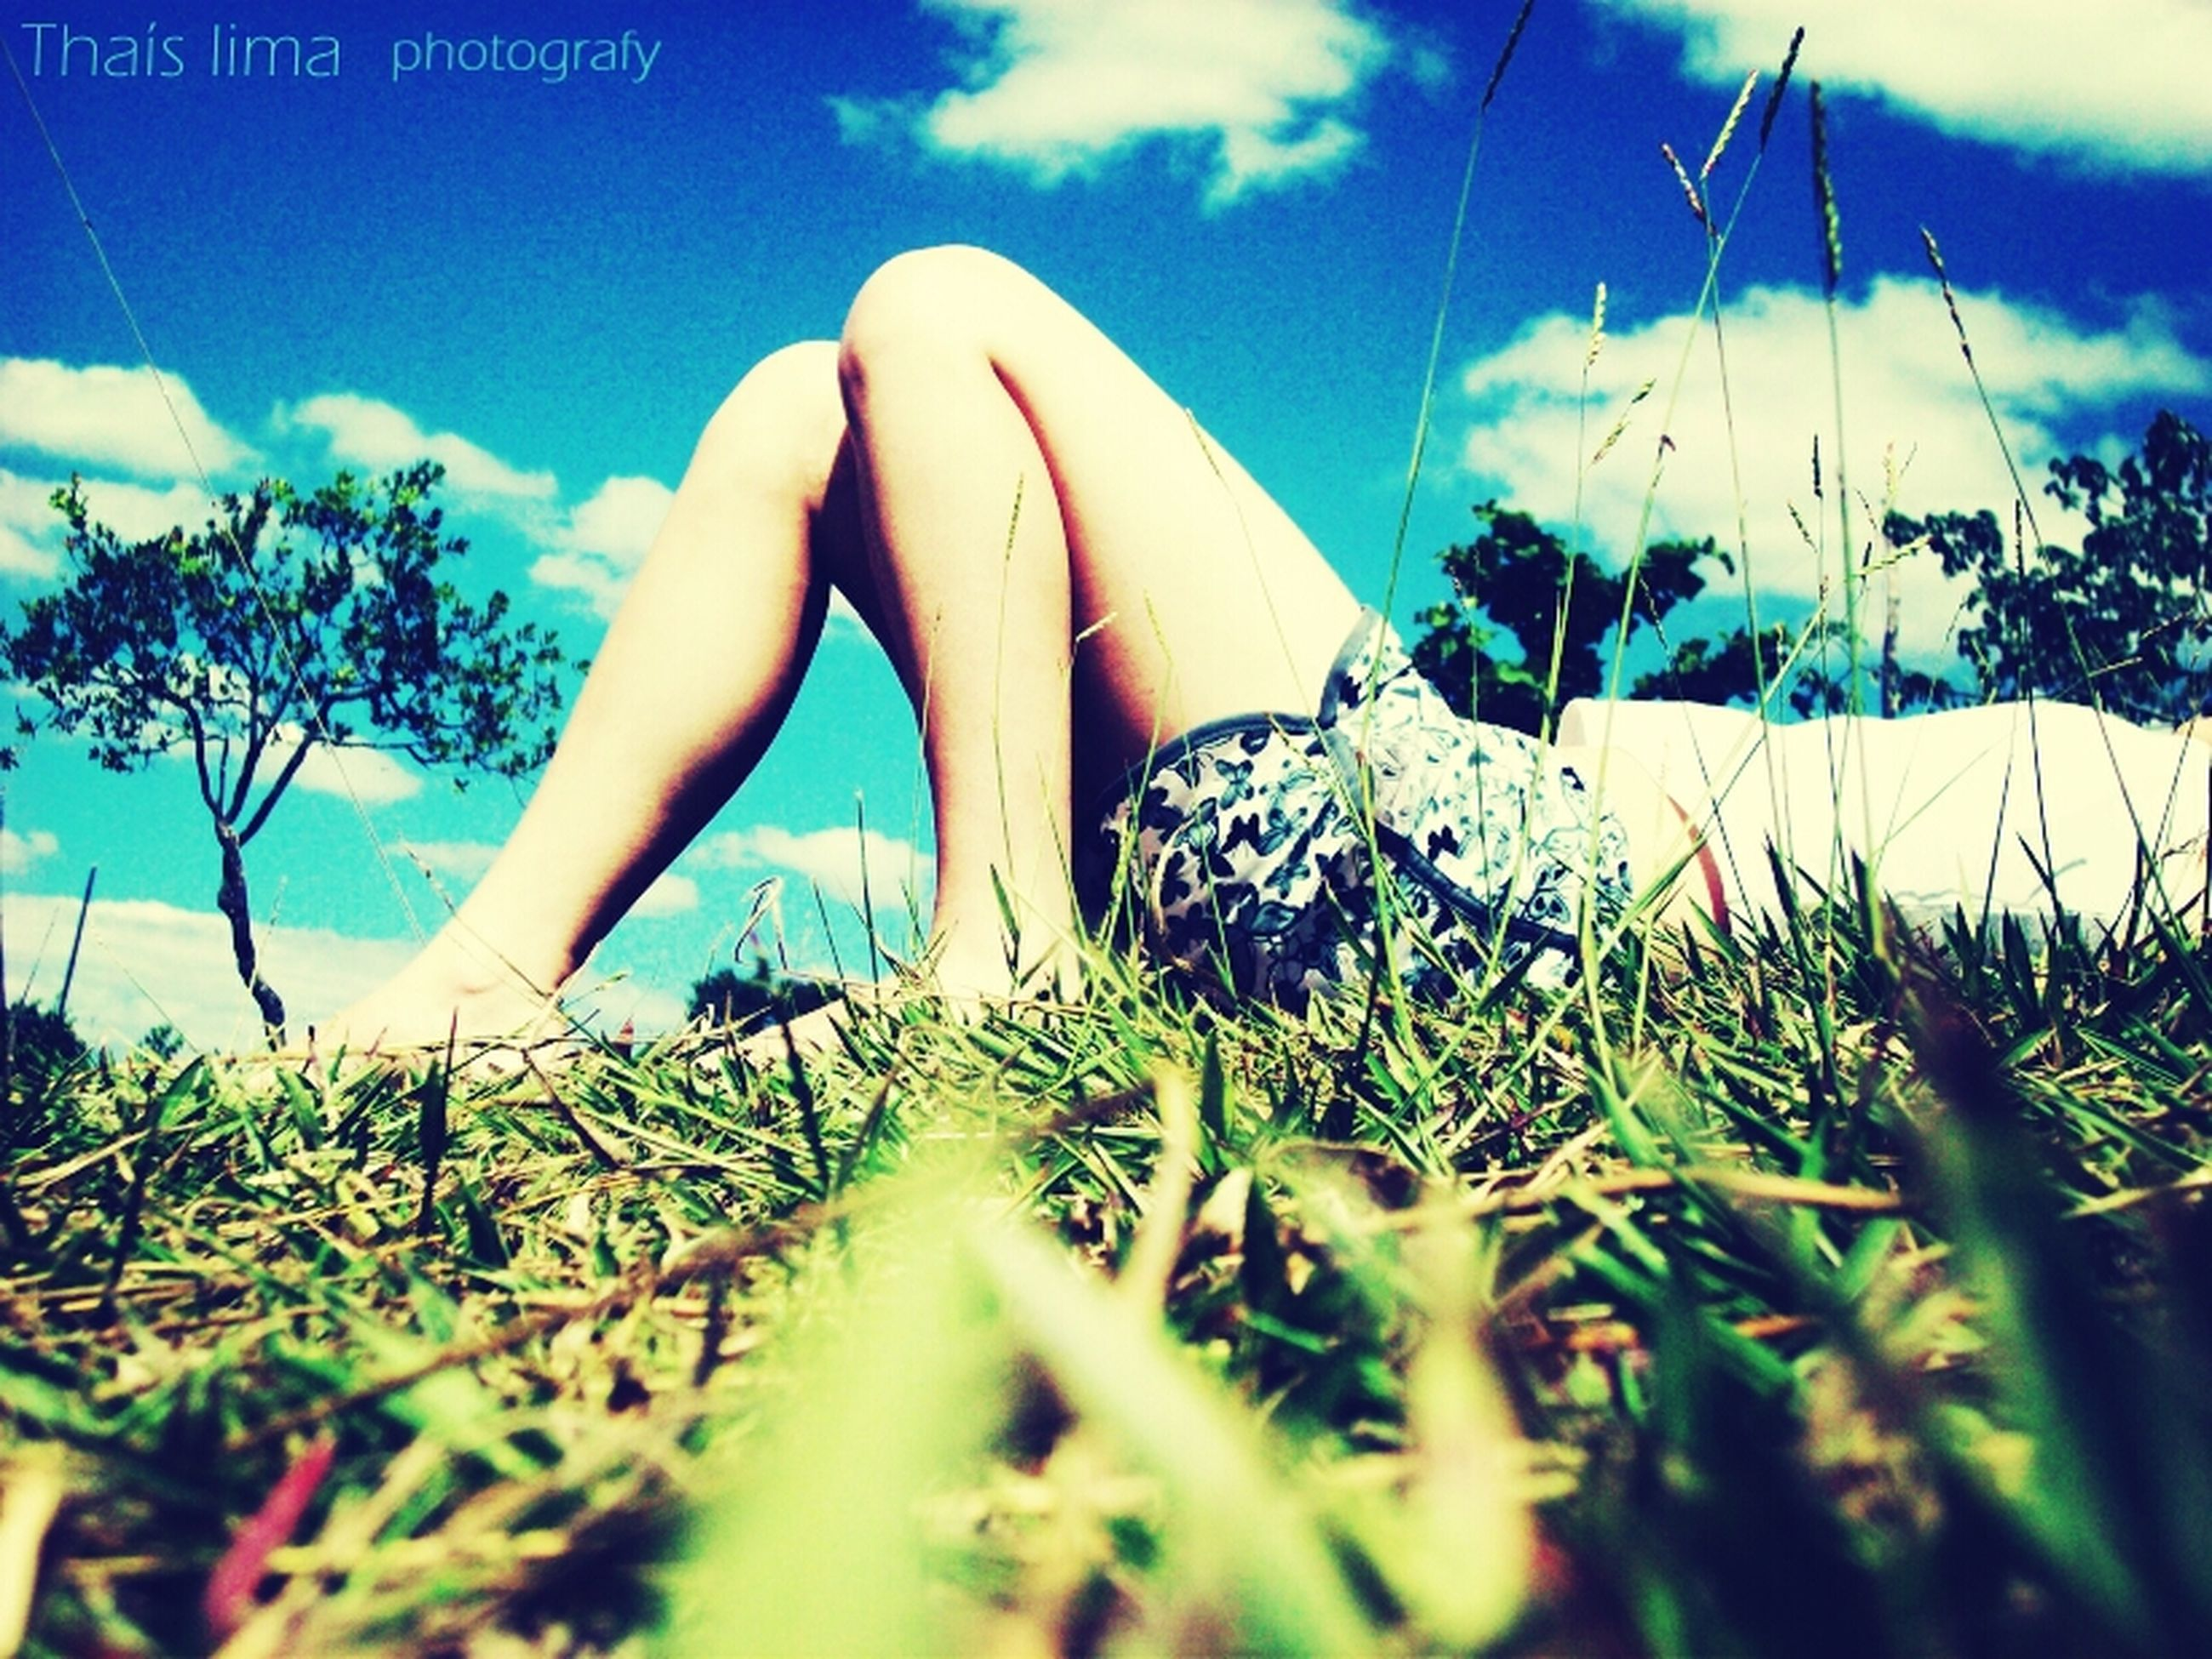 sky, plant, low section, person, grass, growth, tree, blue, part of, day, sunlight, field, cloud, nature, cloud - sky, outdoors